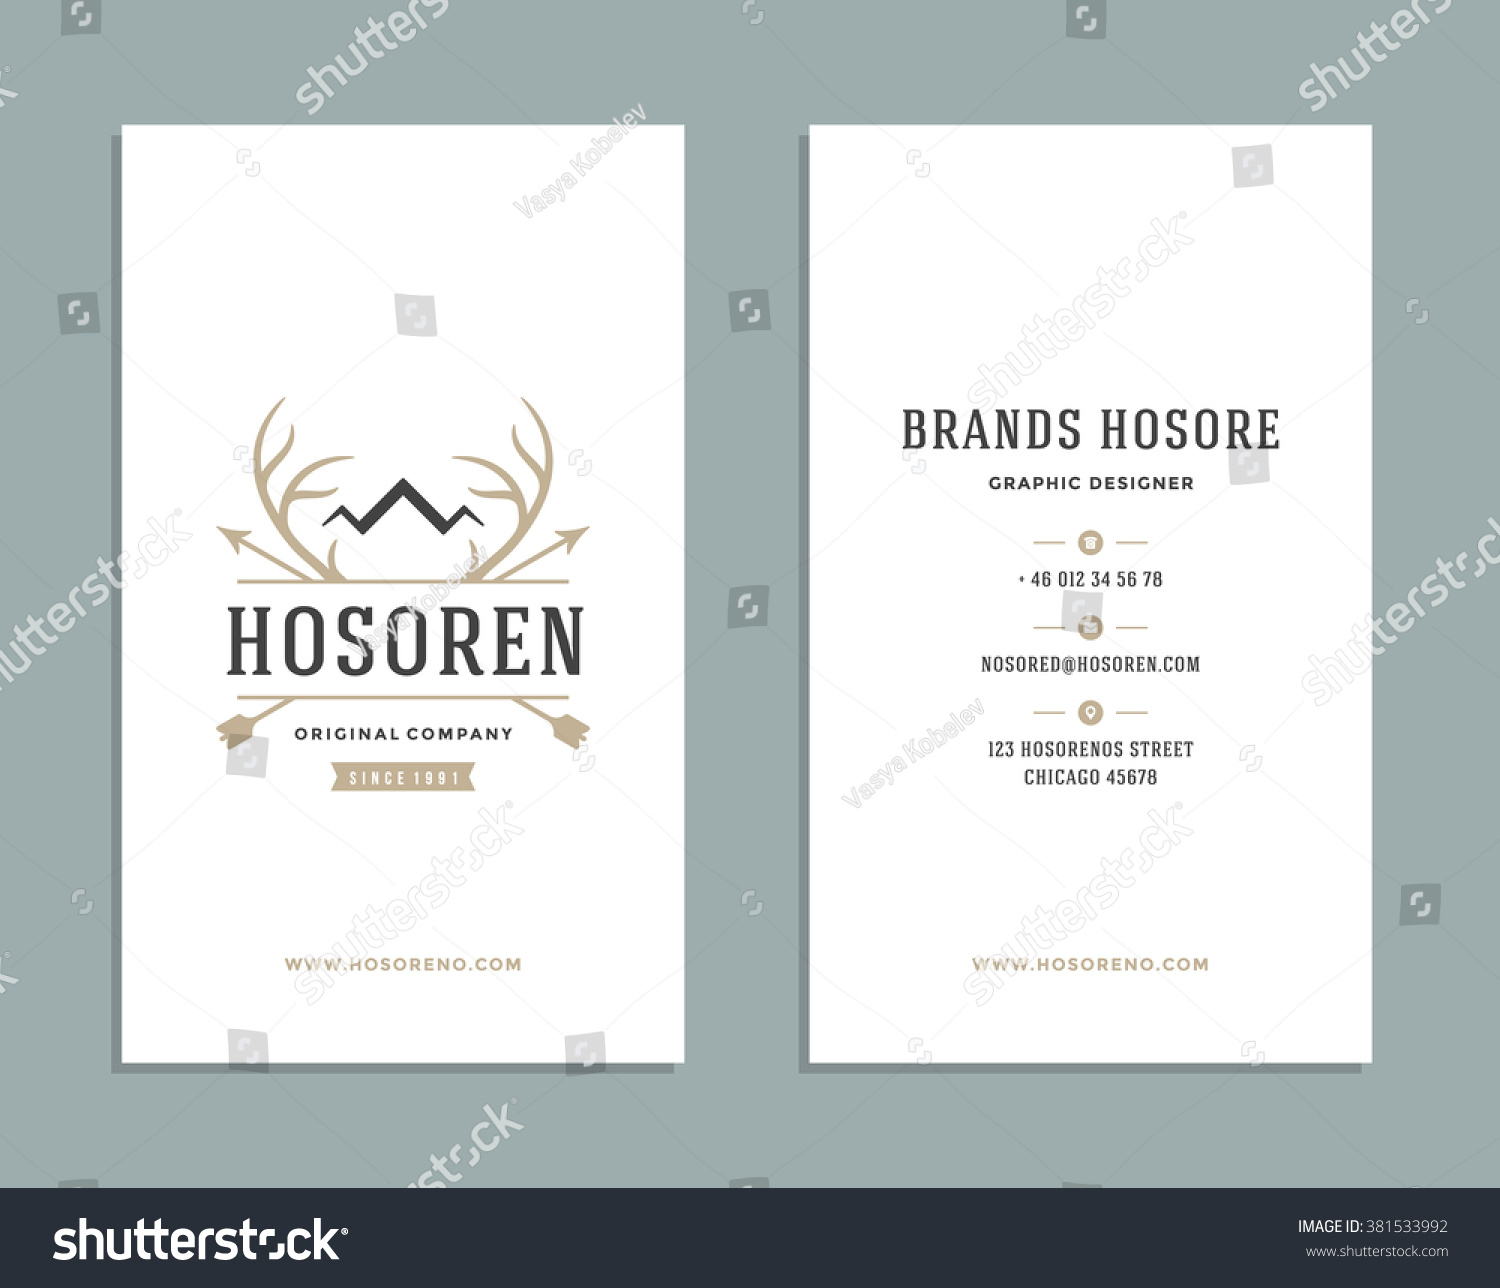 Business Card Design Deer Horns Crown Stock Vector Royalty Free Butchering Diagram And Logo Template Element Vintage Style For